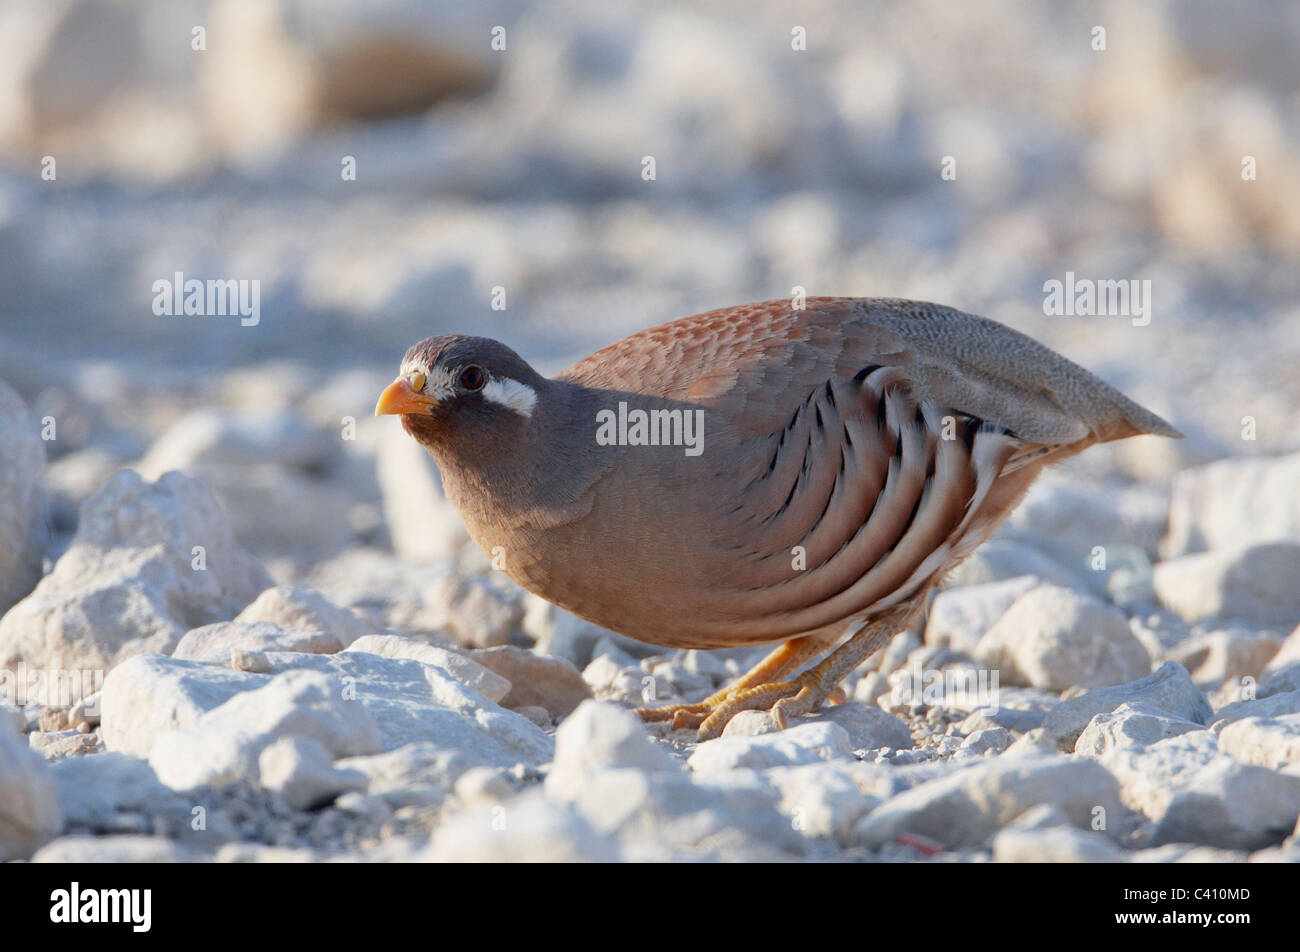 Sand Partridge (Ammoperdix heyi). Male standing on rocky ground. Israel. - Stock Image